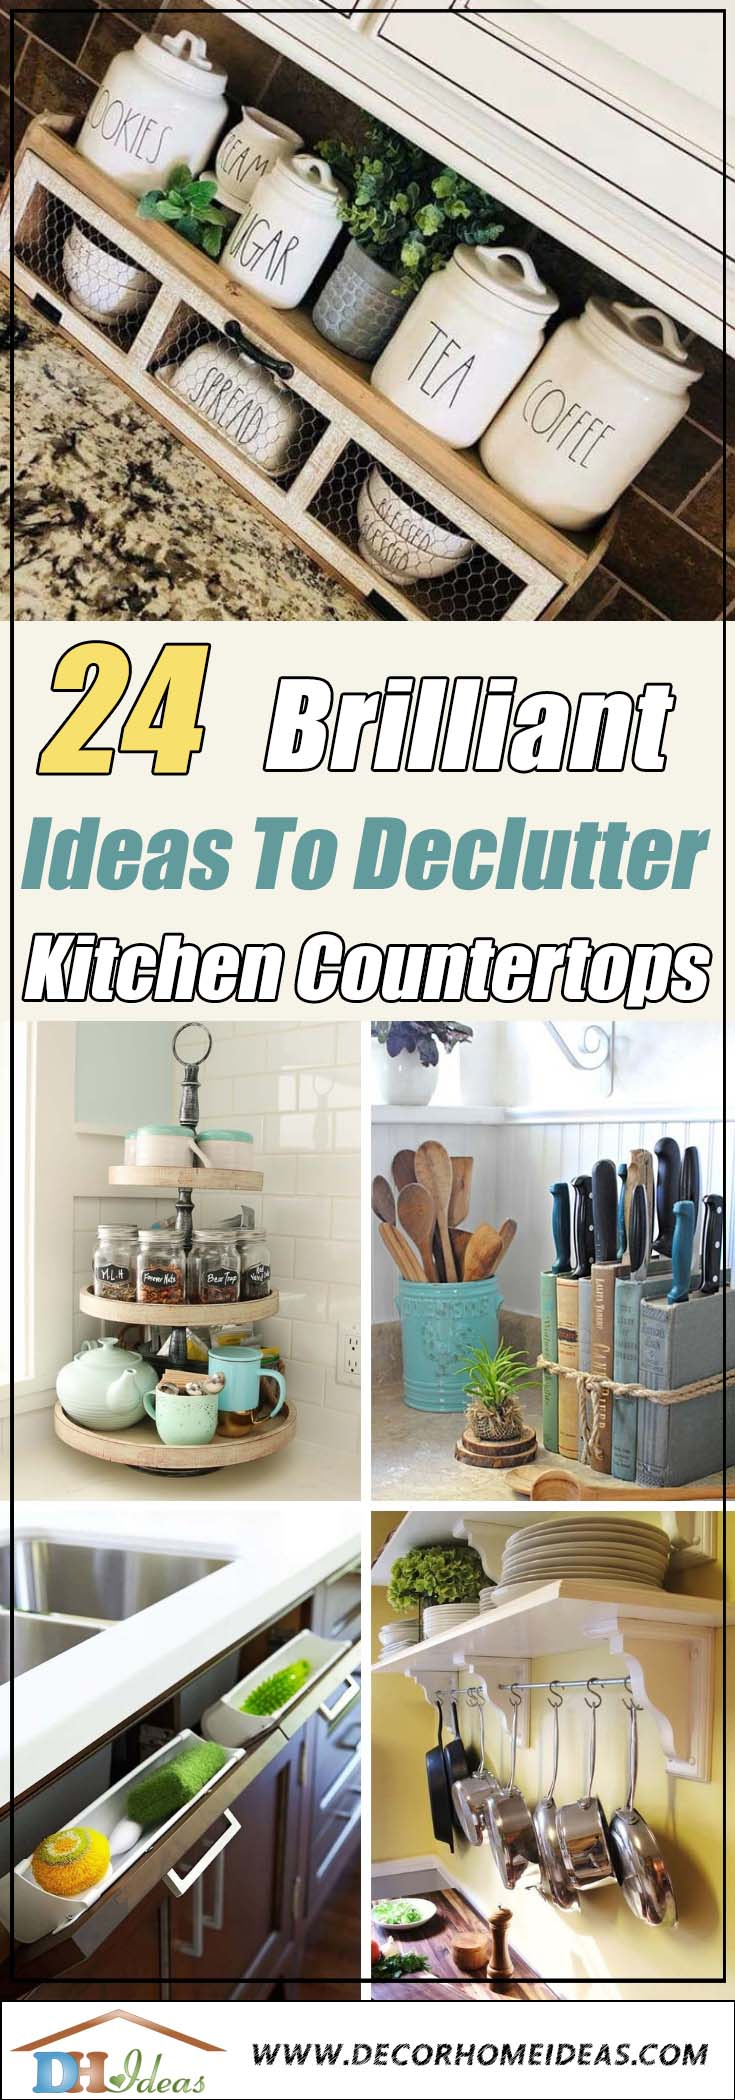 Kitchen Countertop Declutter Ideas